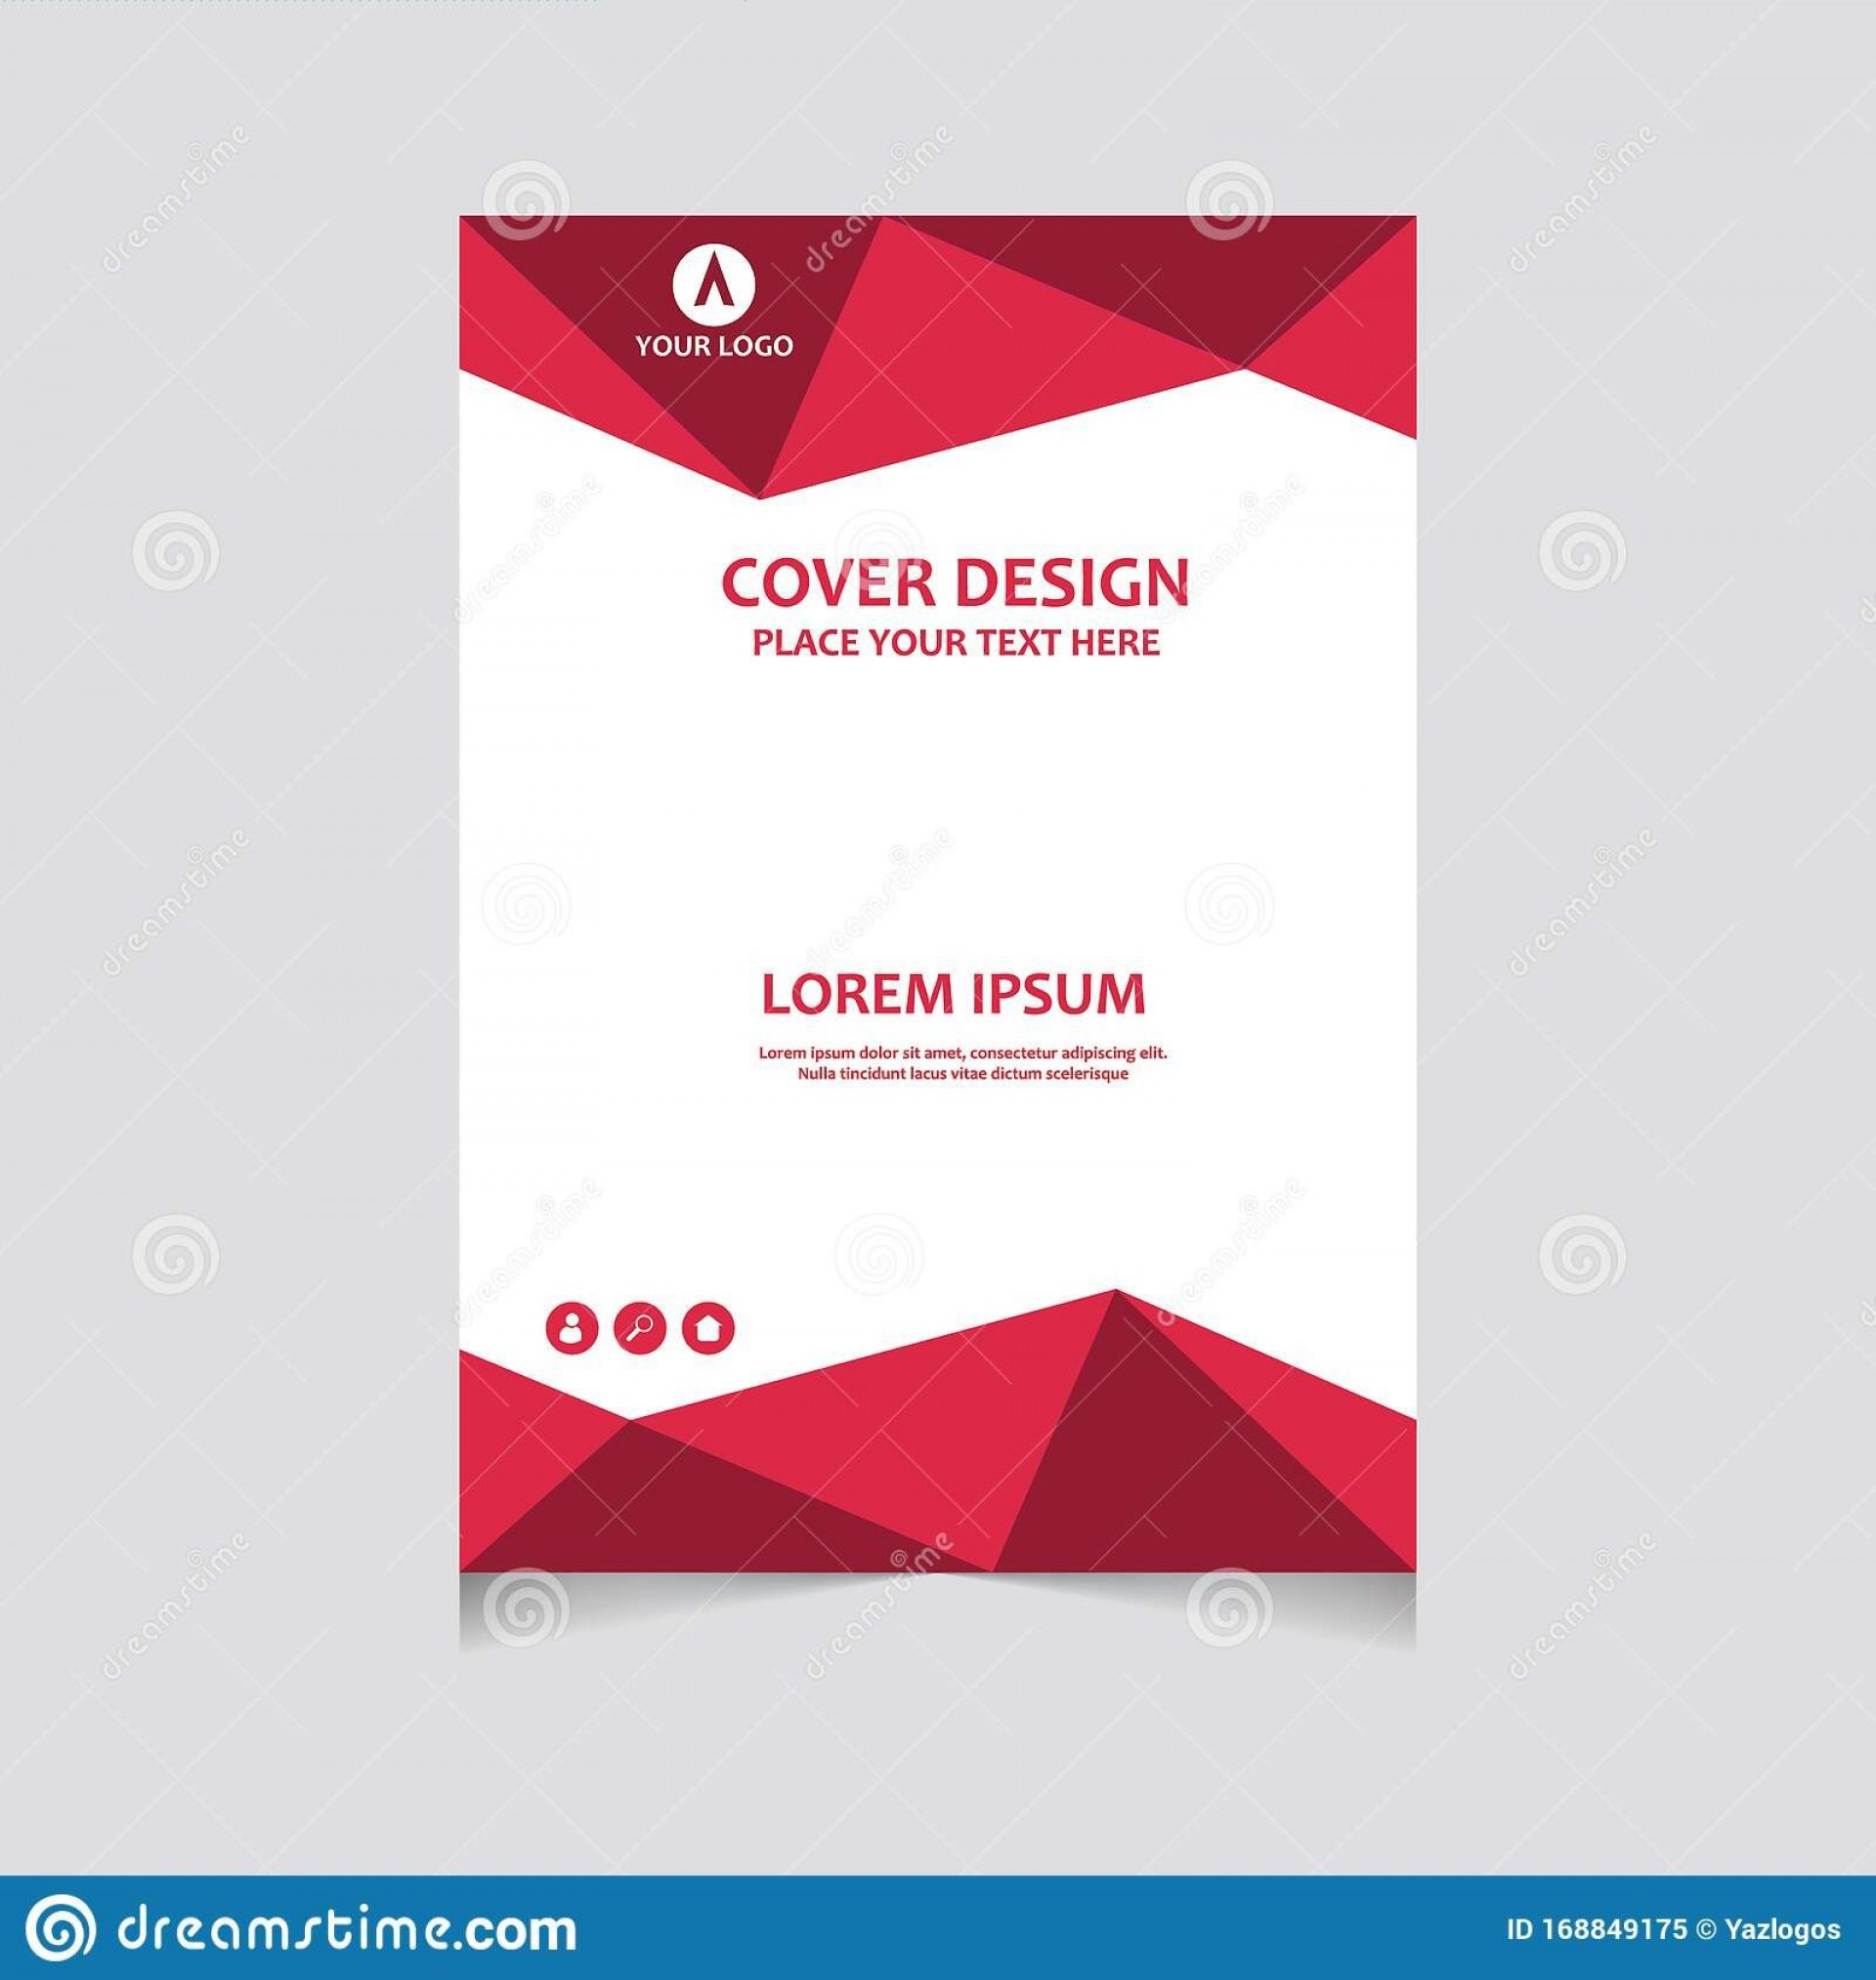 004 Phenomenal Book Front Page Design Template Free Download Image  Cover Psd1920